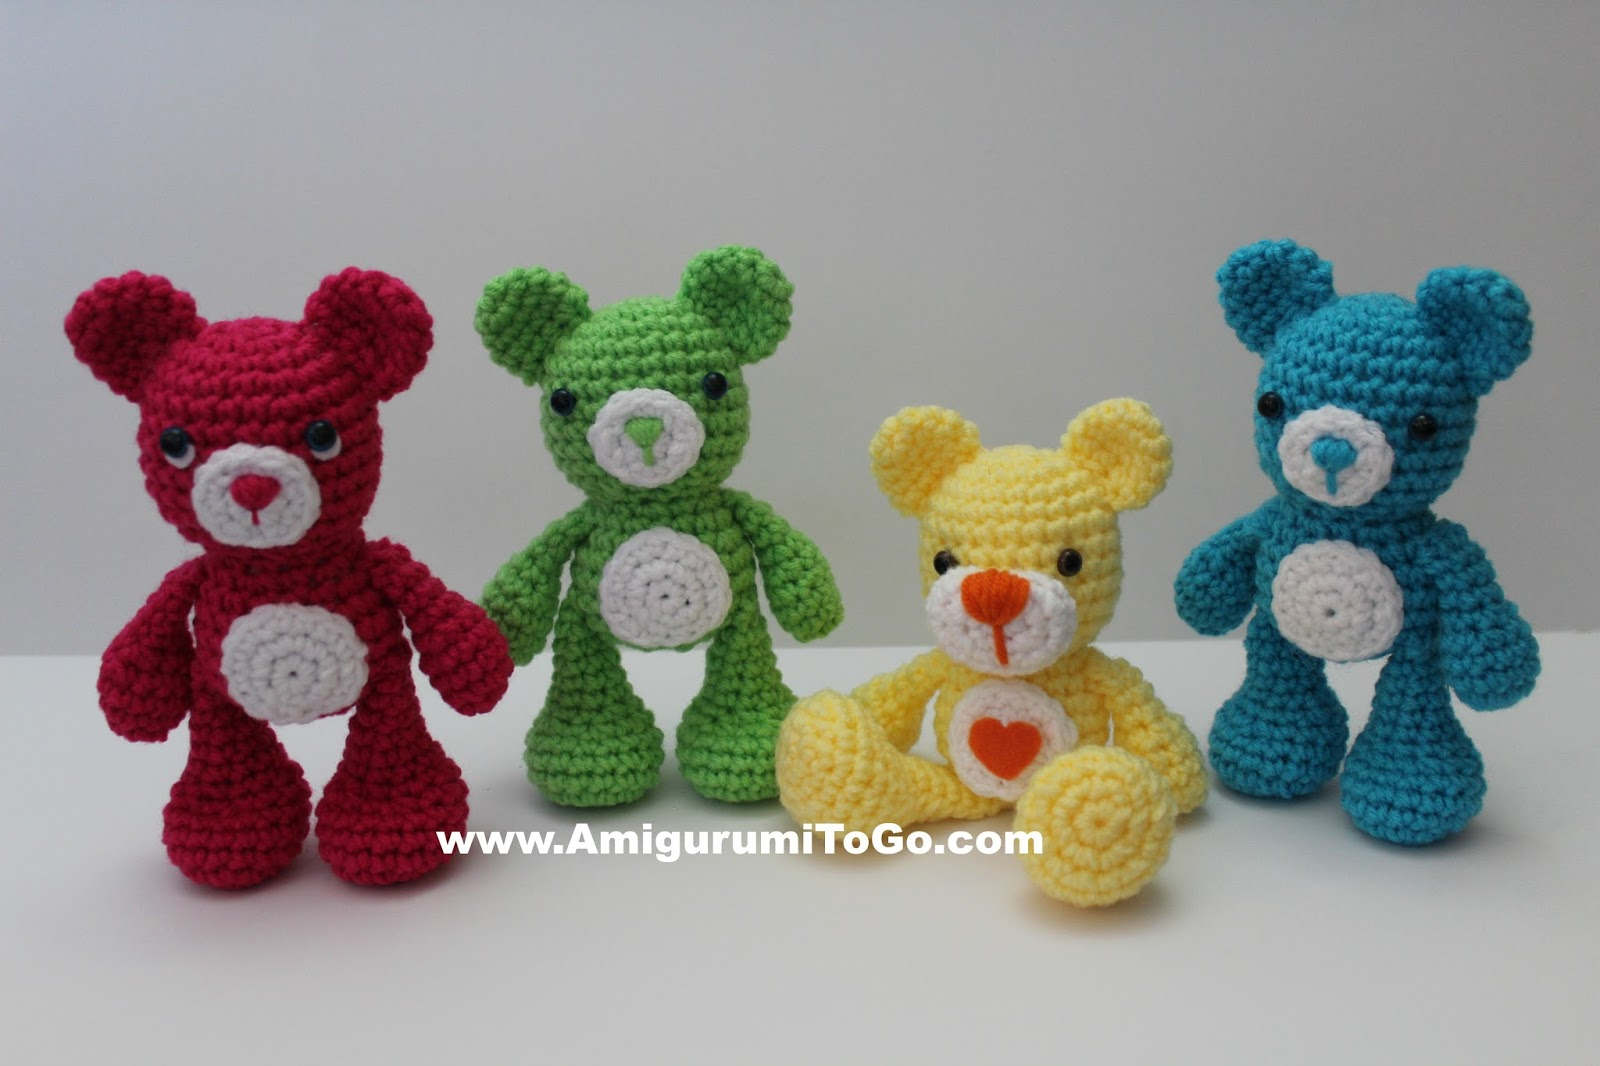 Free Amigurumi Nativity Pattern : Valentine teddy bear with heart shaped feet amigurumi to go